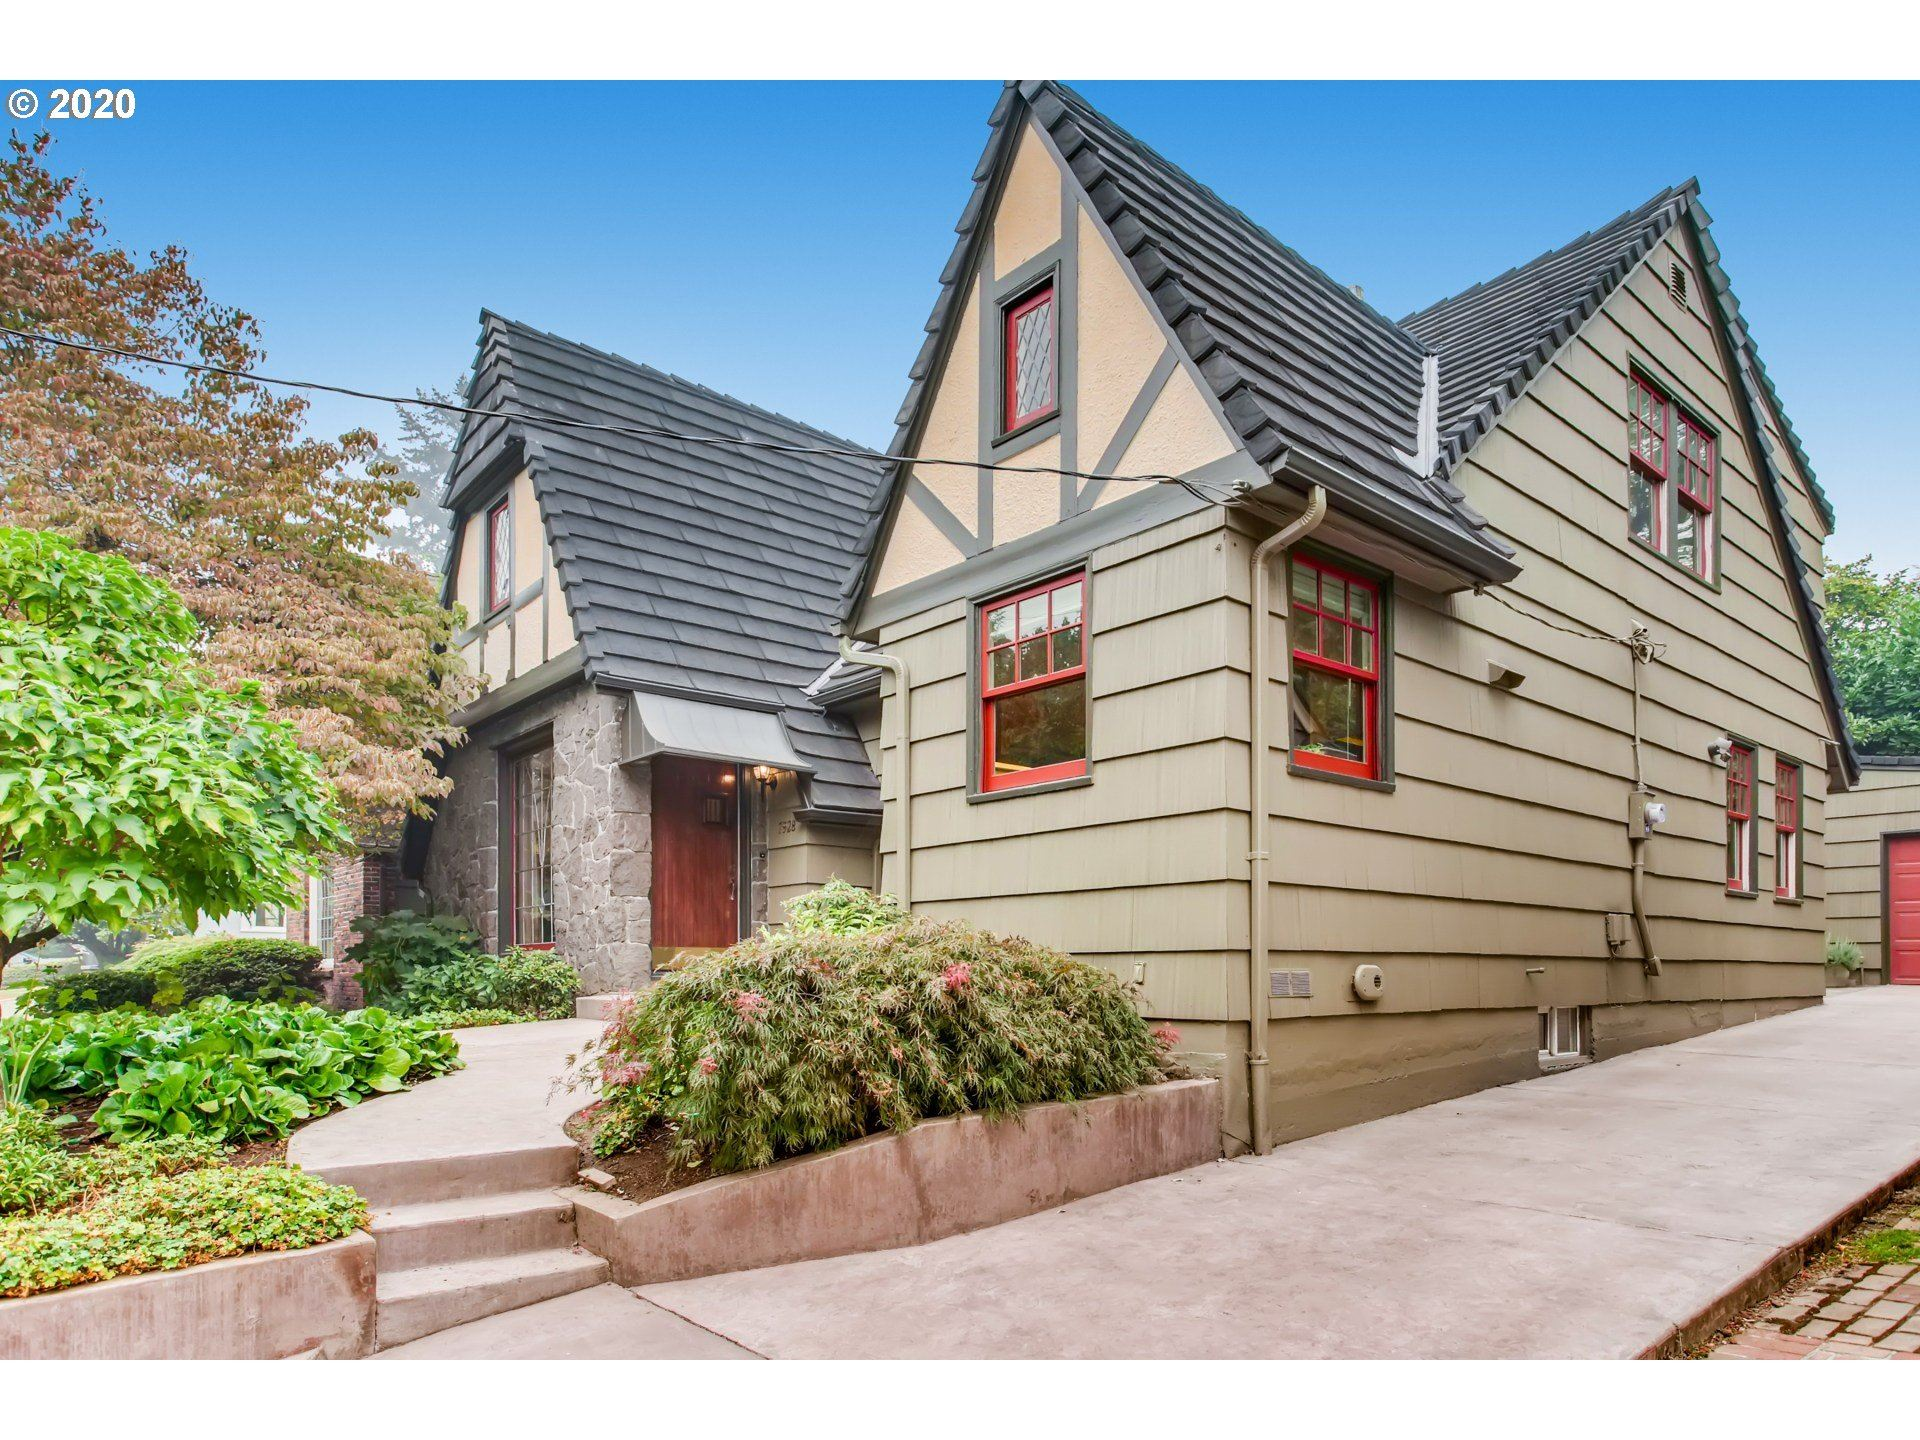 7928 SE 28TH AVE, Portland, OR 97202 - MLS#: 20470485